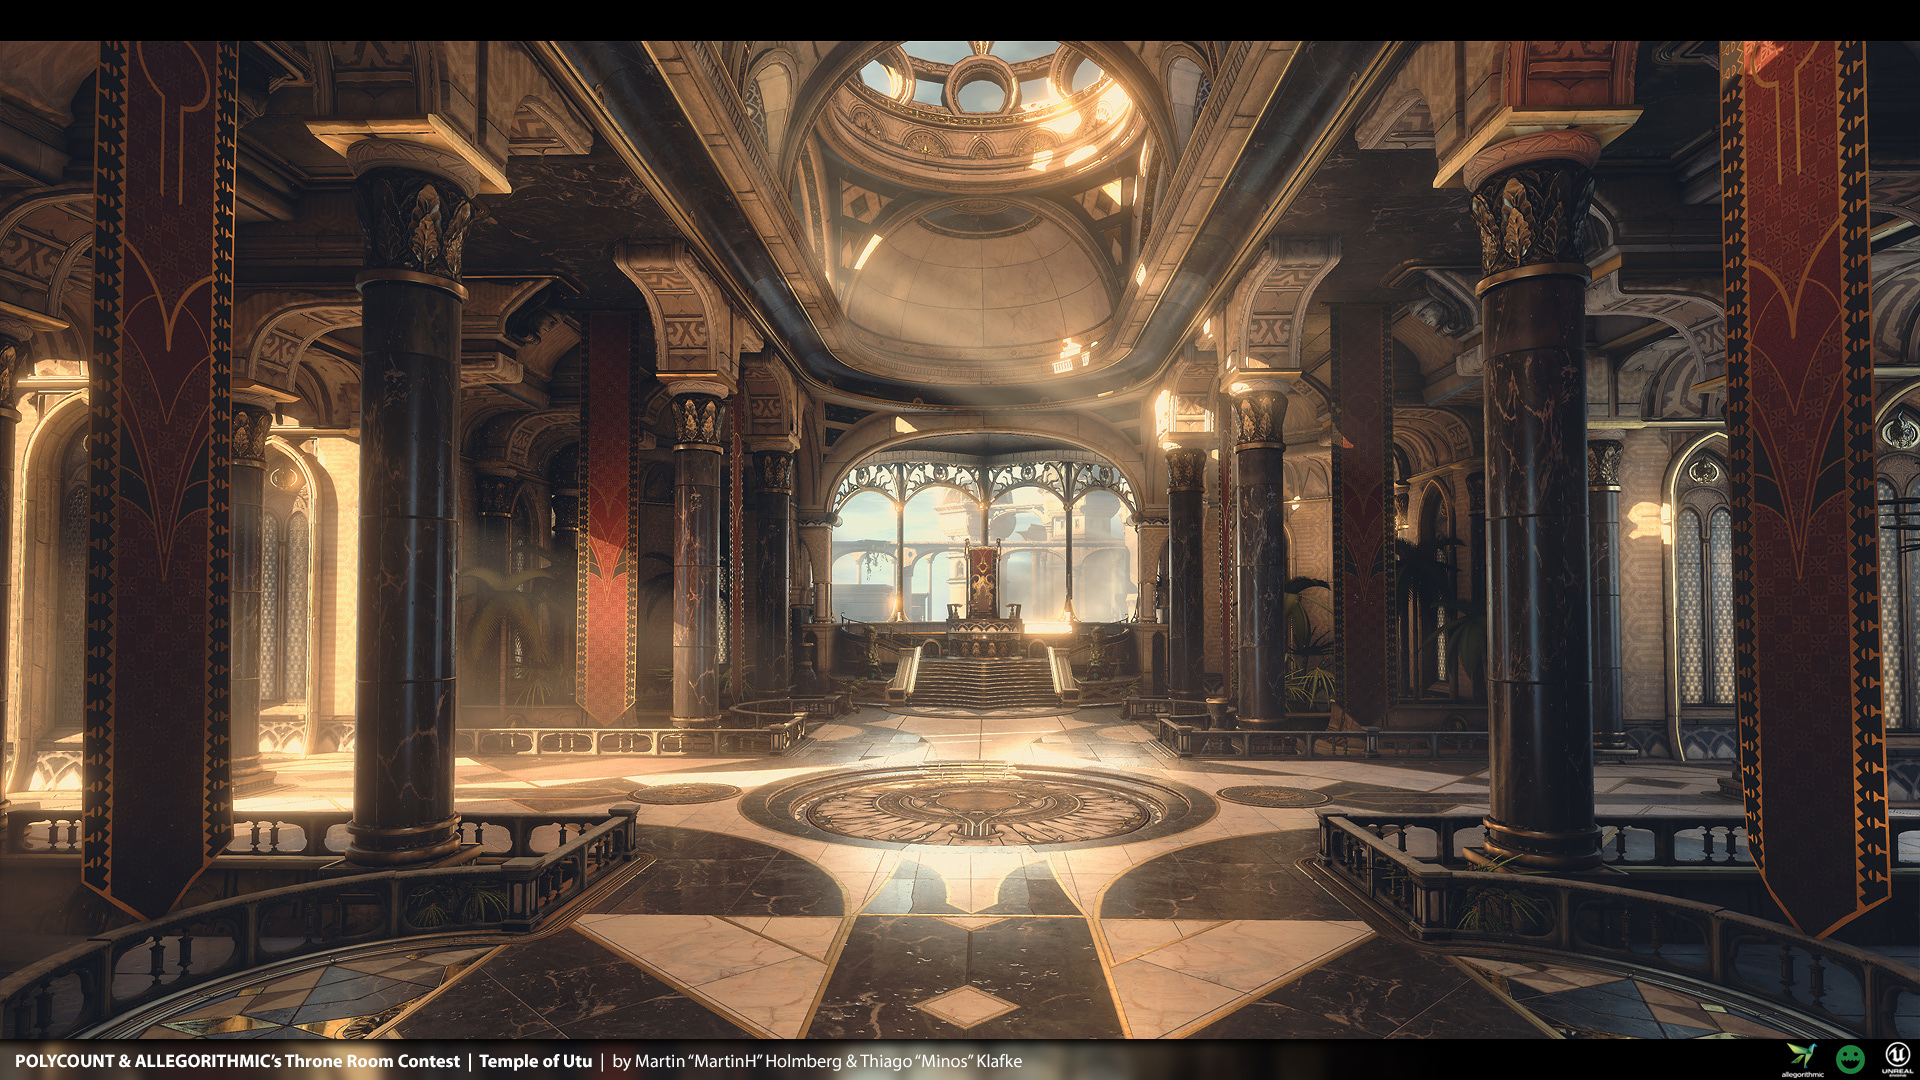 Temple of utu unreal engine 4 env for polycount 39 s throne for Image city interiors